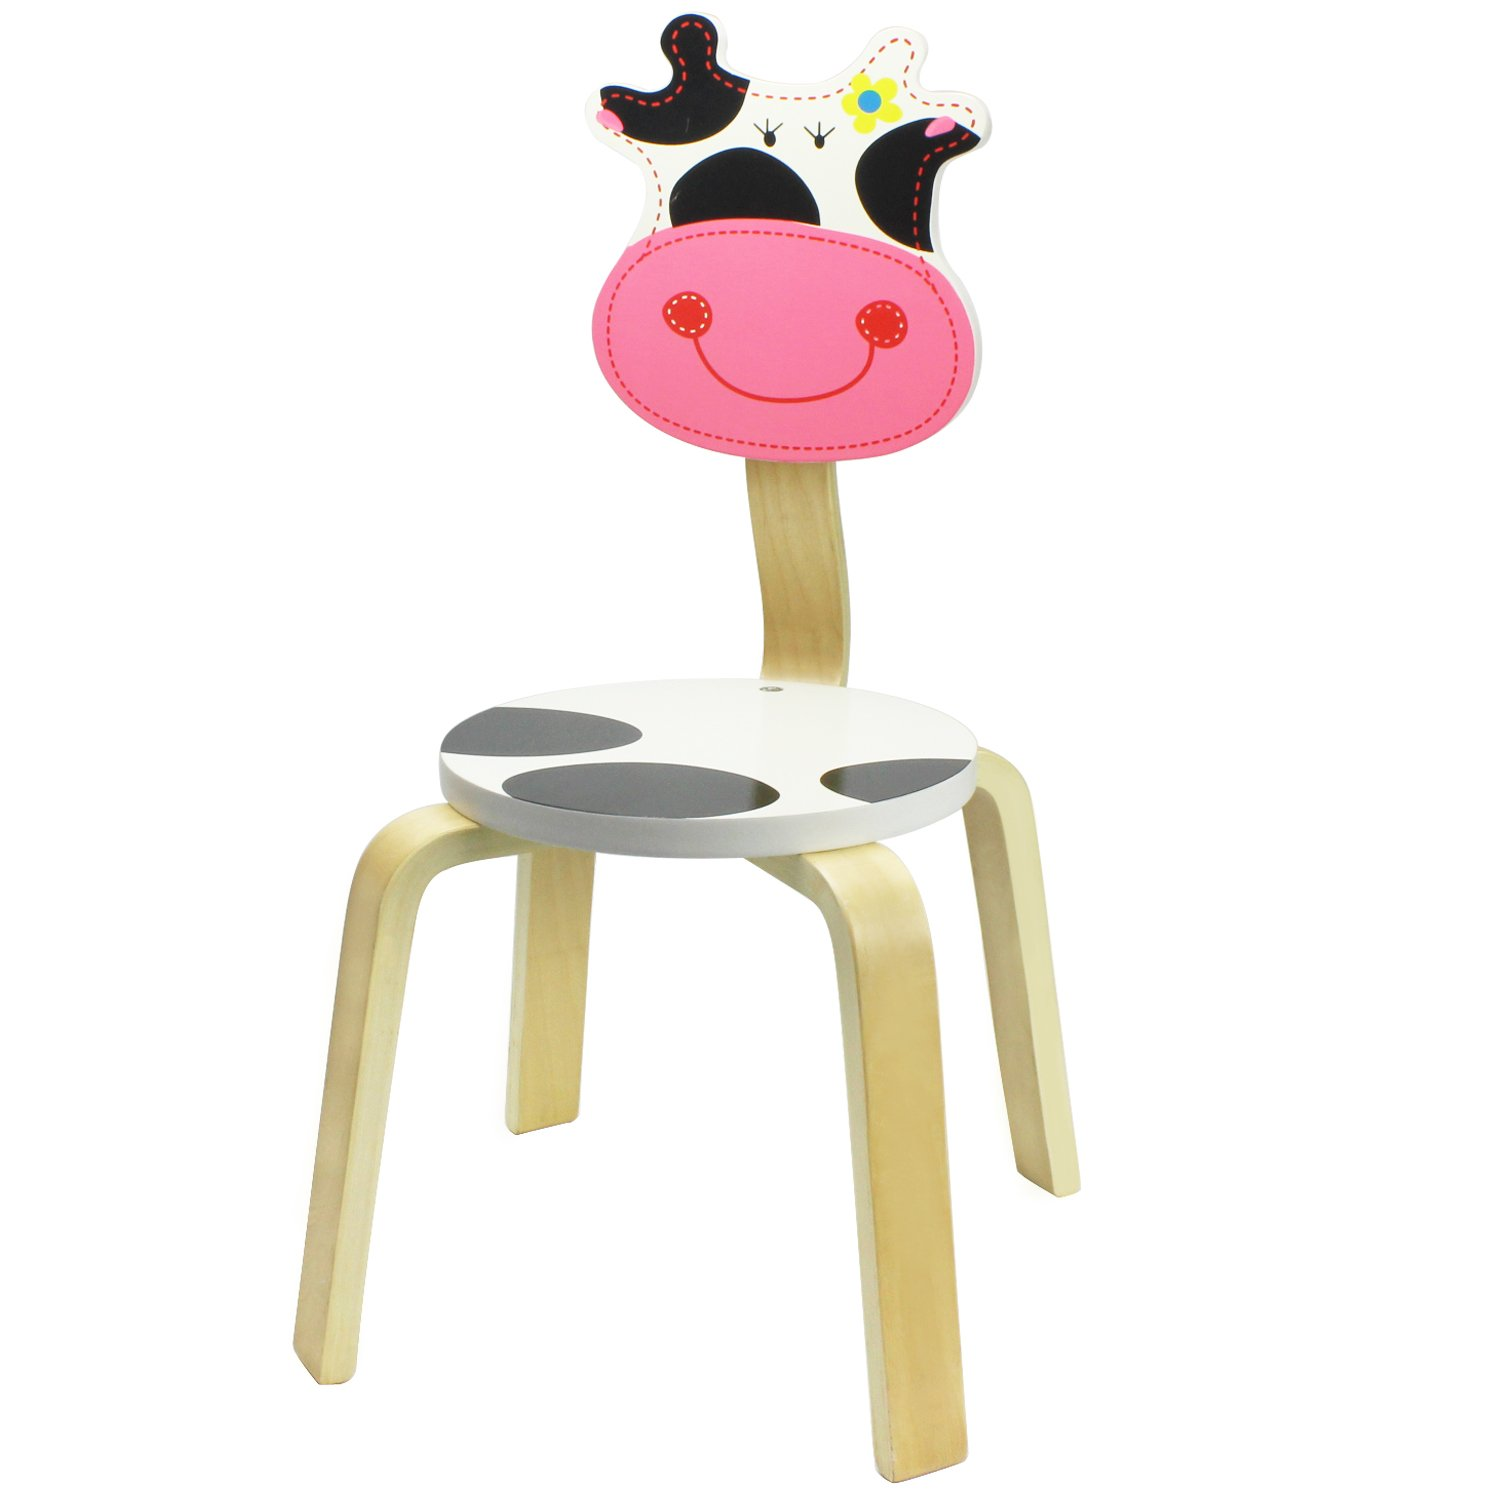 iPlay, iLearn Kids Wood Stacking Chair, Cute Cow Seat for Indoor, Outdoor, Playroom, Time Out, Classroom, Daycare, School Learning Furniture Round Stool for 2, 3, 4, 5 Year Olds Up Child, Boy, Girl by iPlay, iLearn (Image #1)